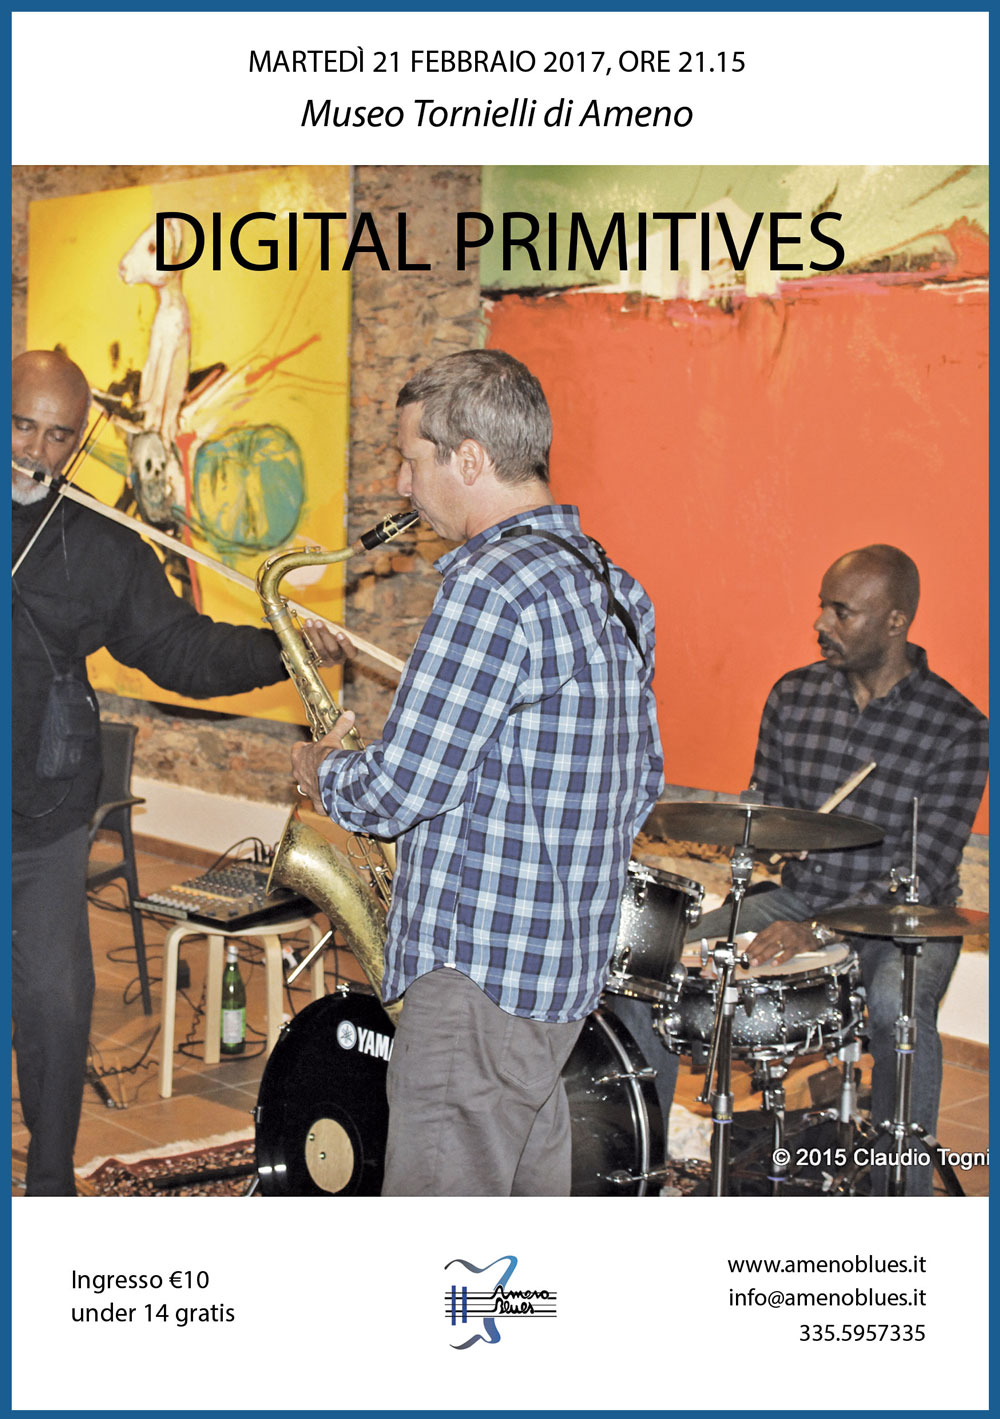 DIGITALPRIMITIVES